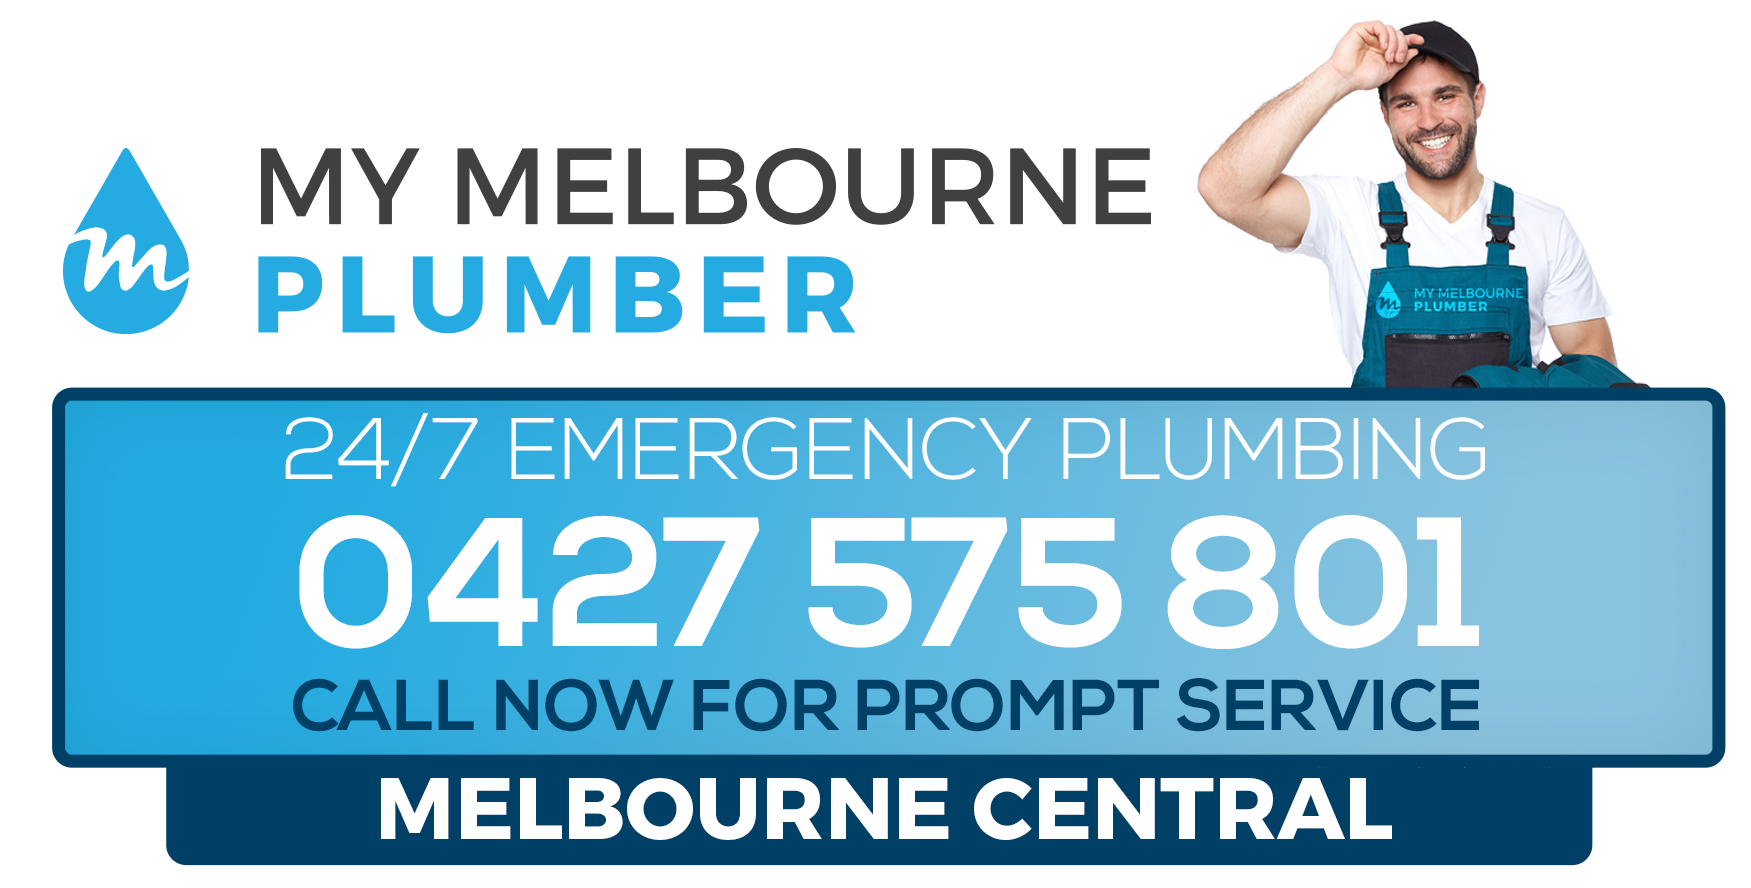 Plumbers Melbourne Central